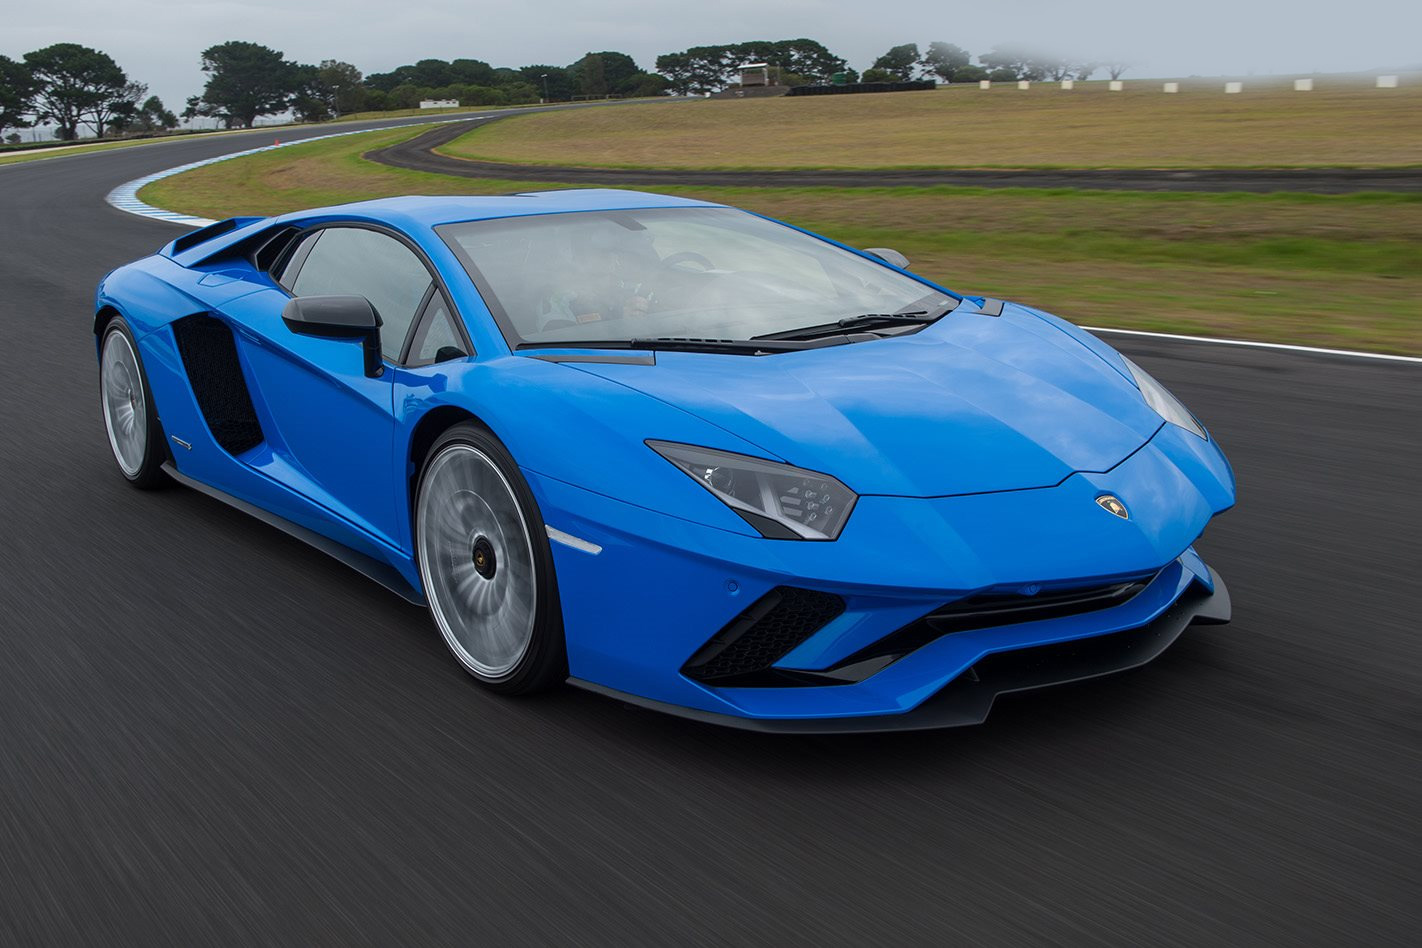 Top 5 Fastest Cars >> Top 5 Fastest Cars For Sale In Australia